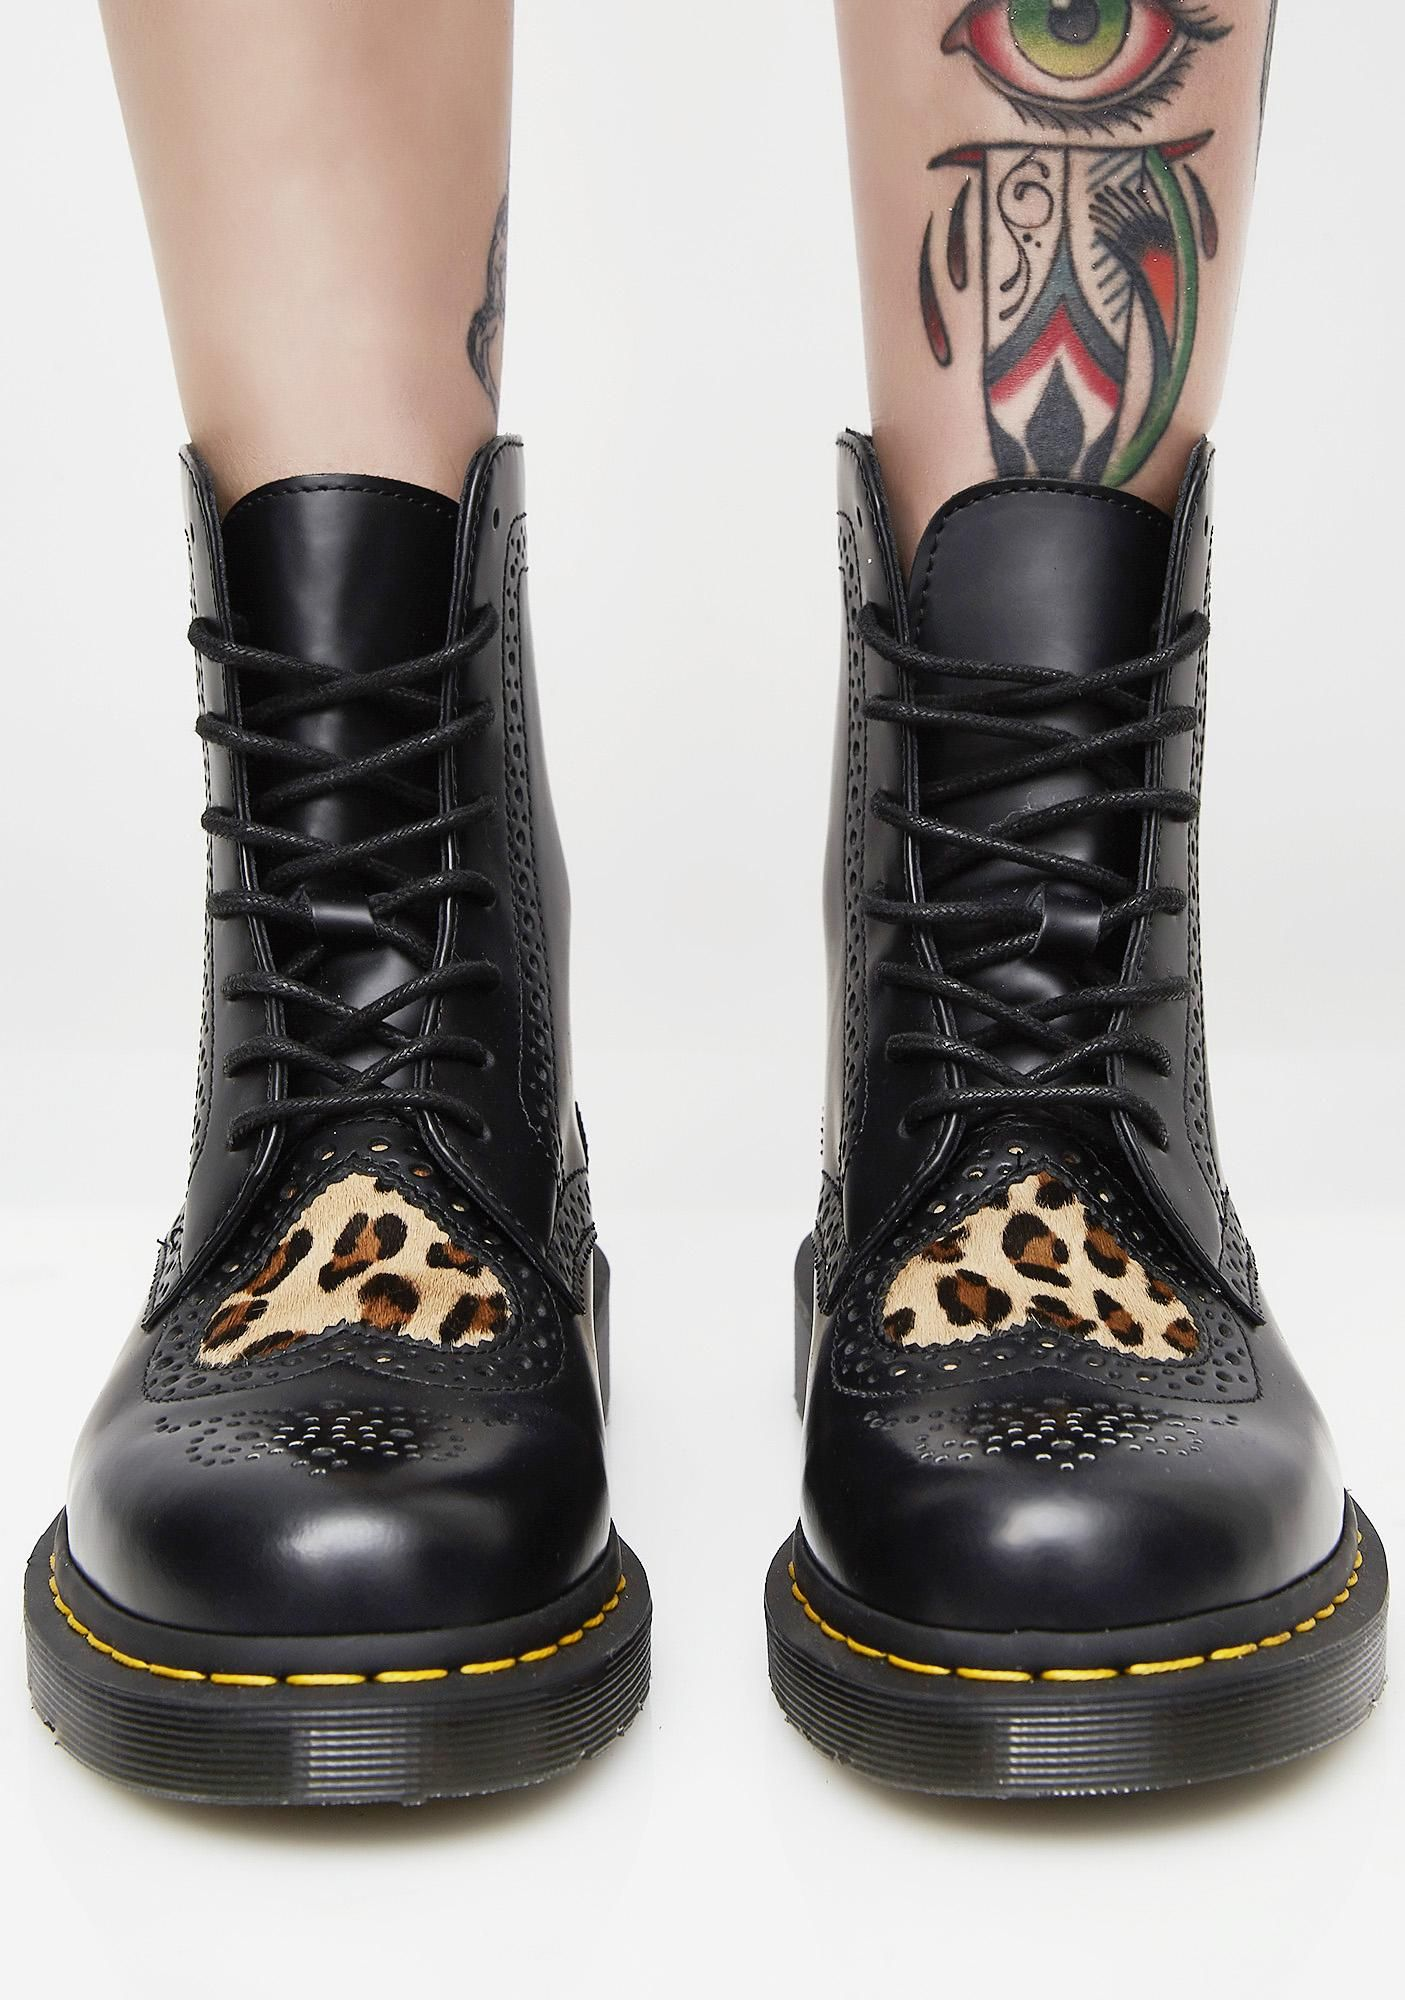 e62d7222b2dea Dr. Martens Bentley II Heart Boots cuz they luv to luv ya. These black  boots have leopard print panels on the front